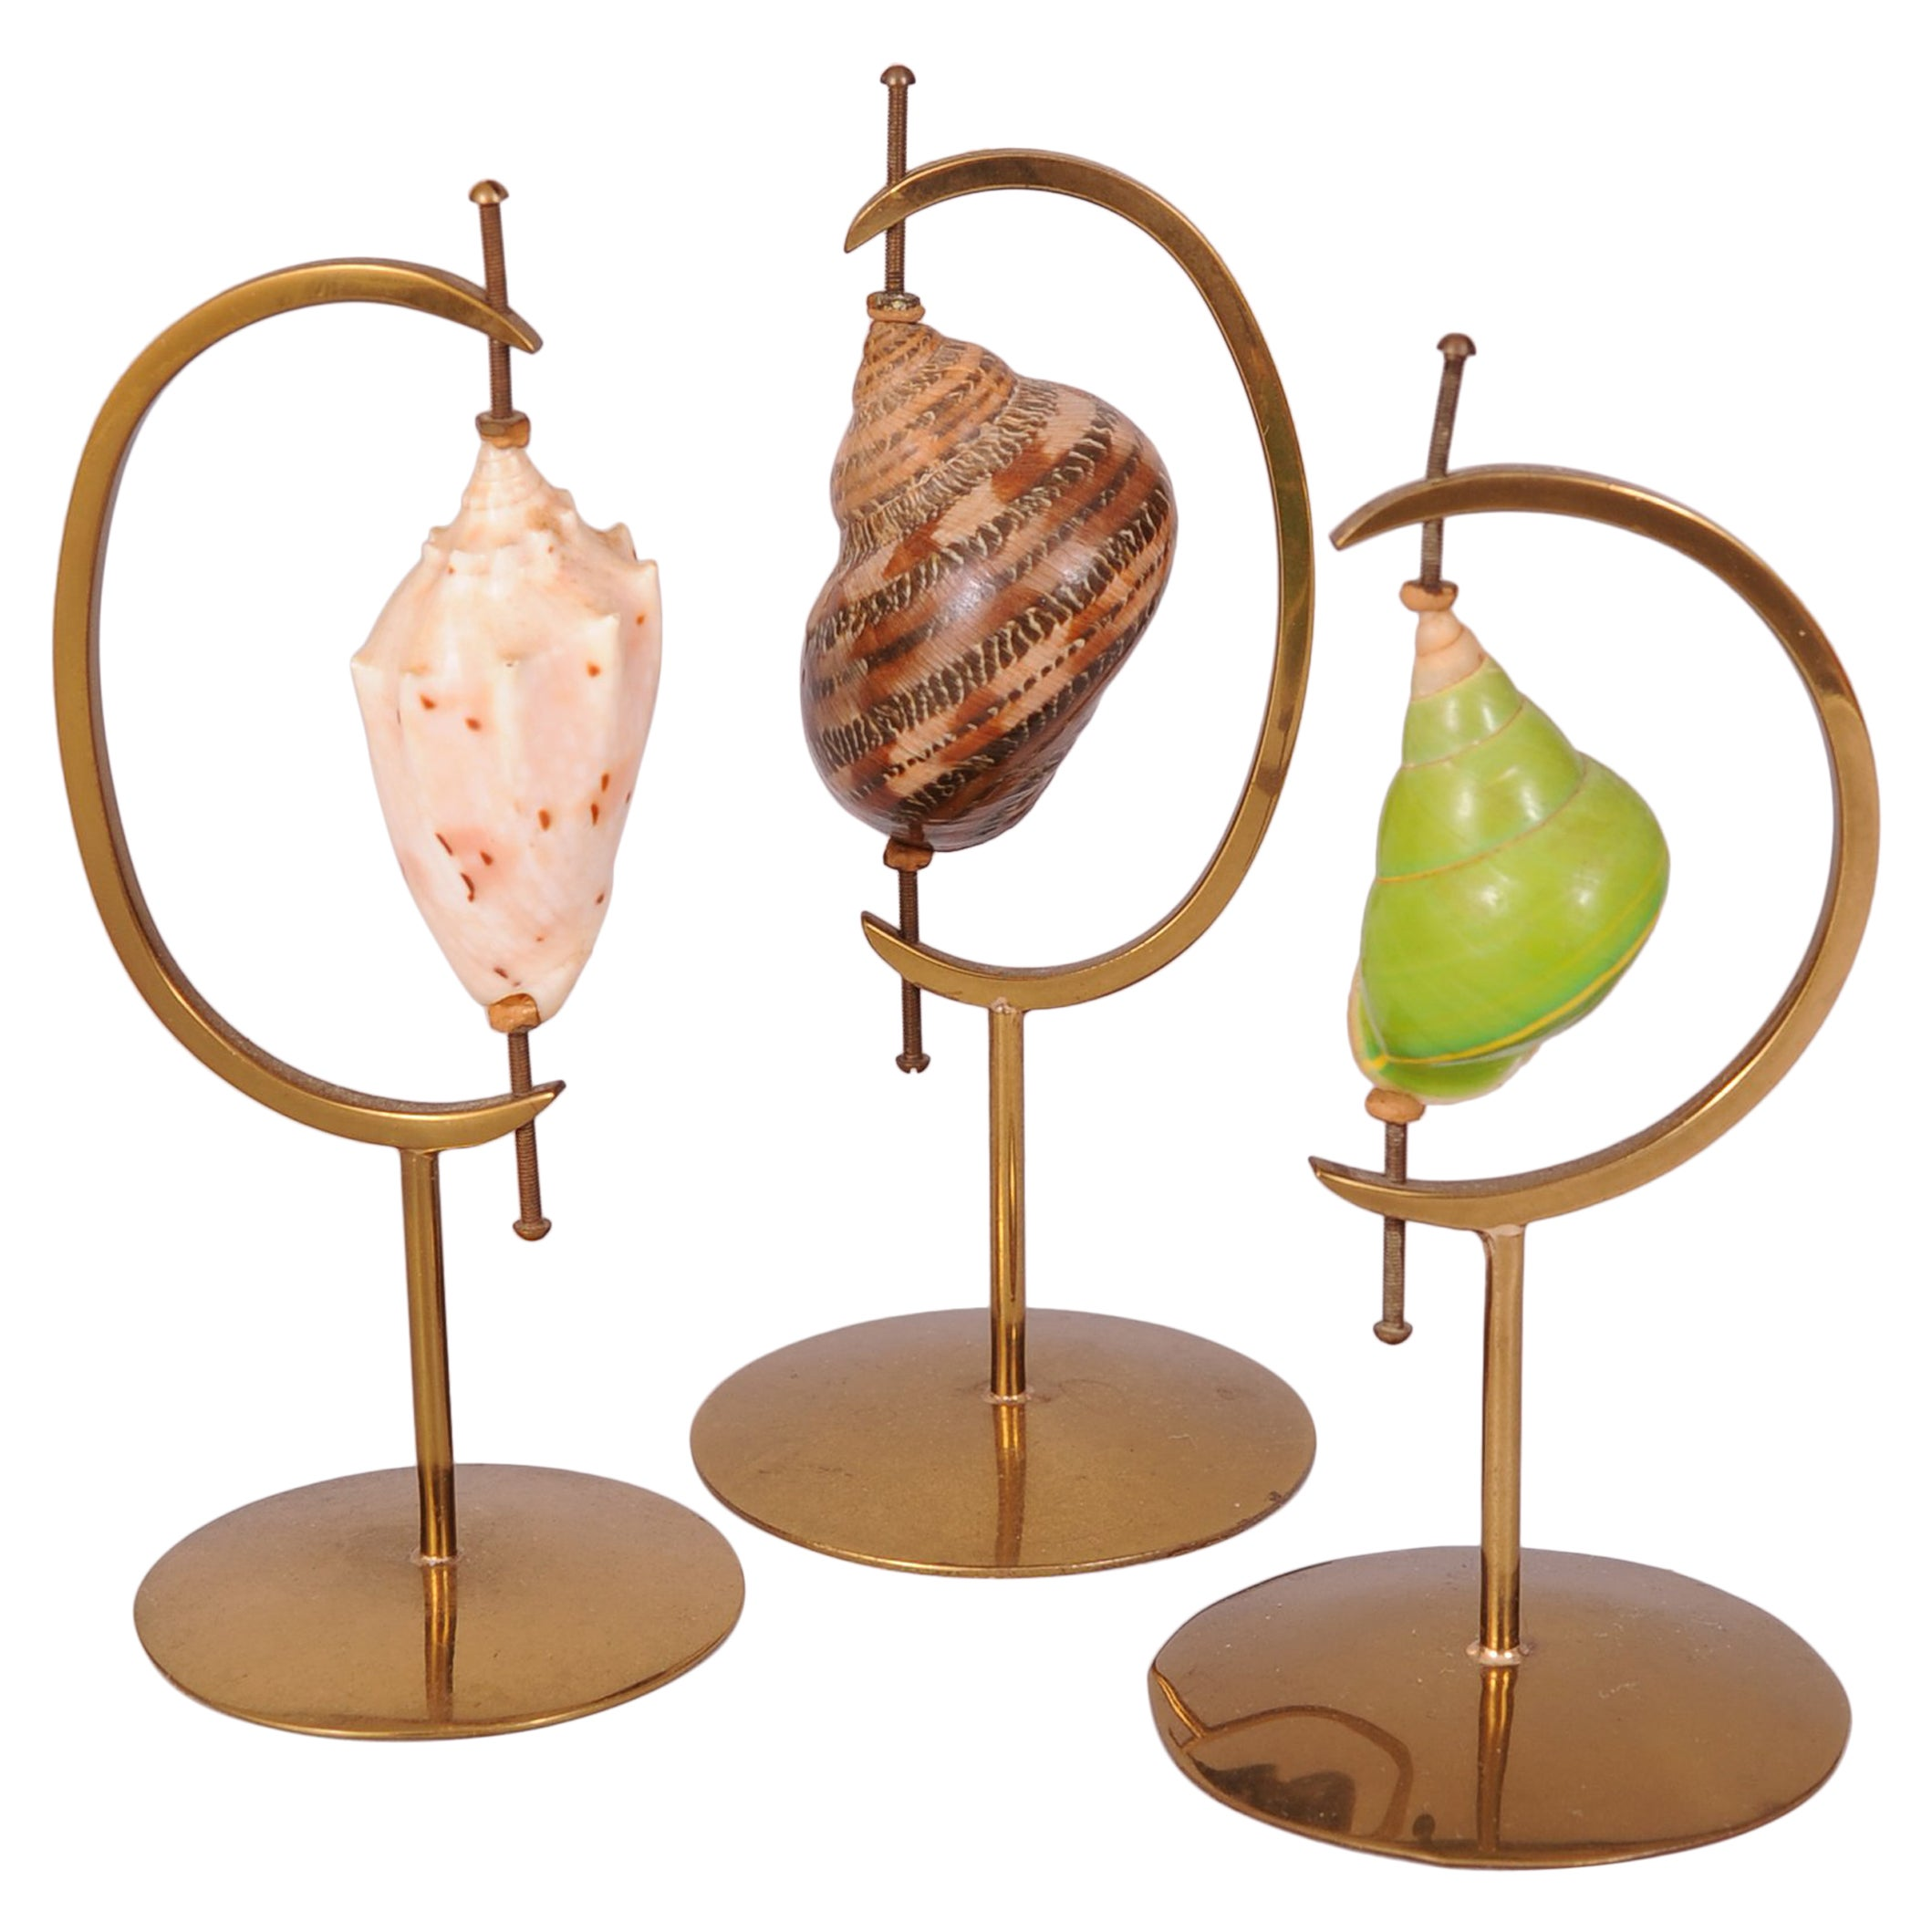 Marguerite Stix Designed Brass Sea Shell Display Stands and Shells, circa 1965